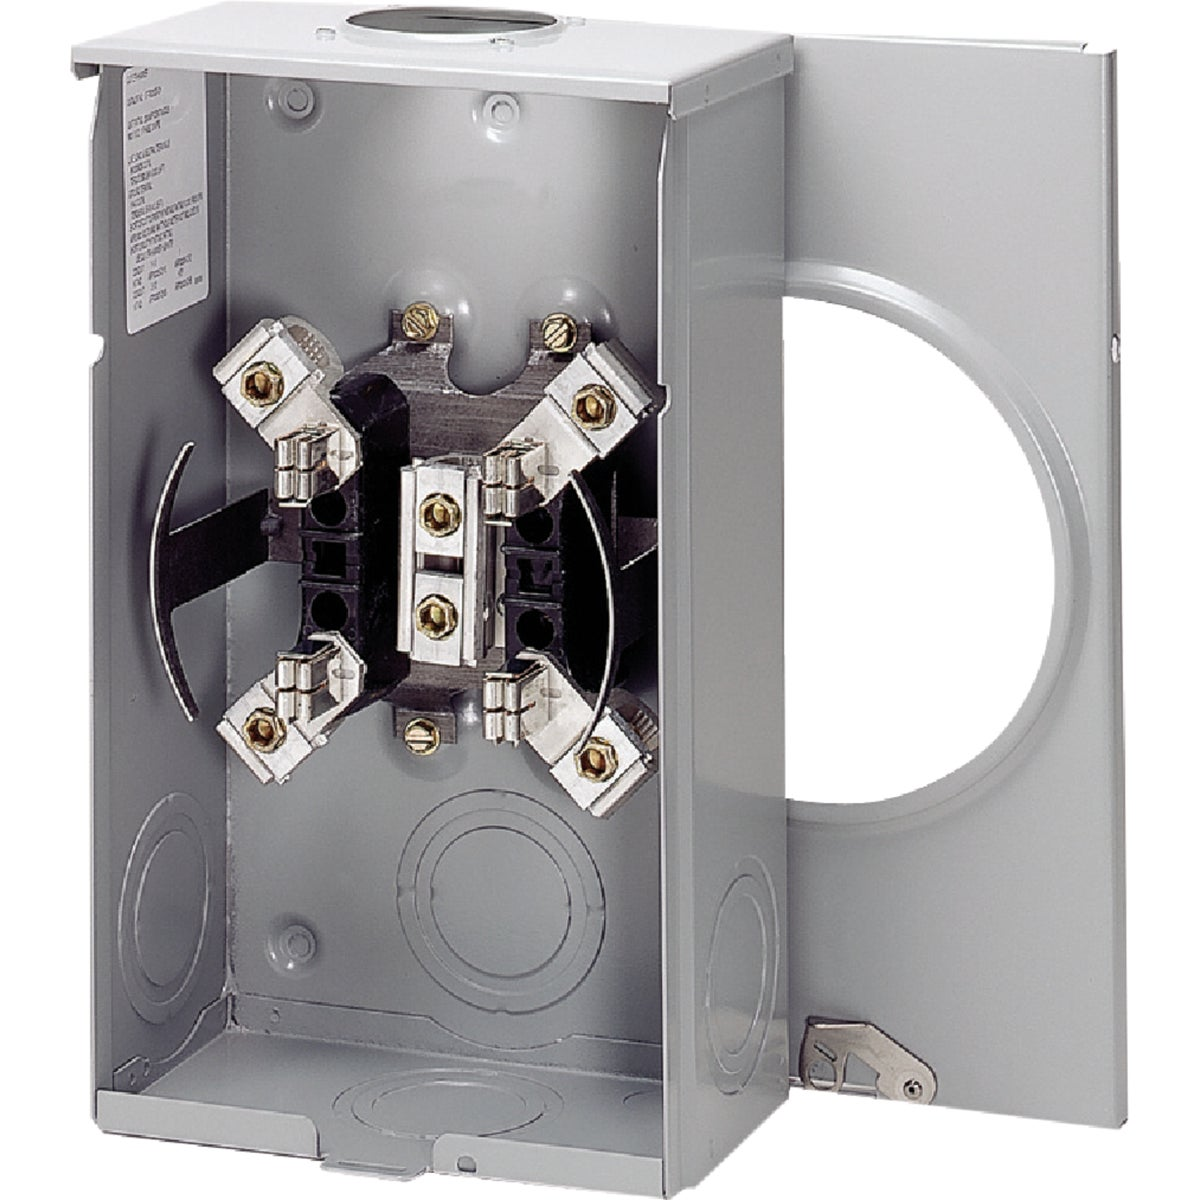 200A METER SOCKET - UTRS202BCH by Eaton Corporation